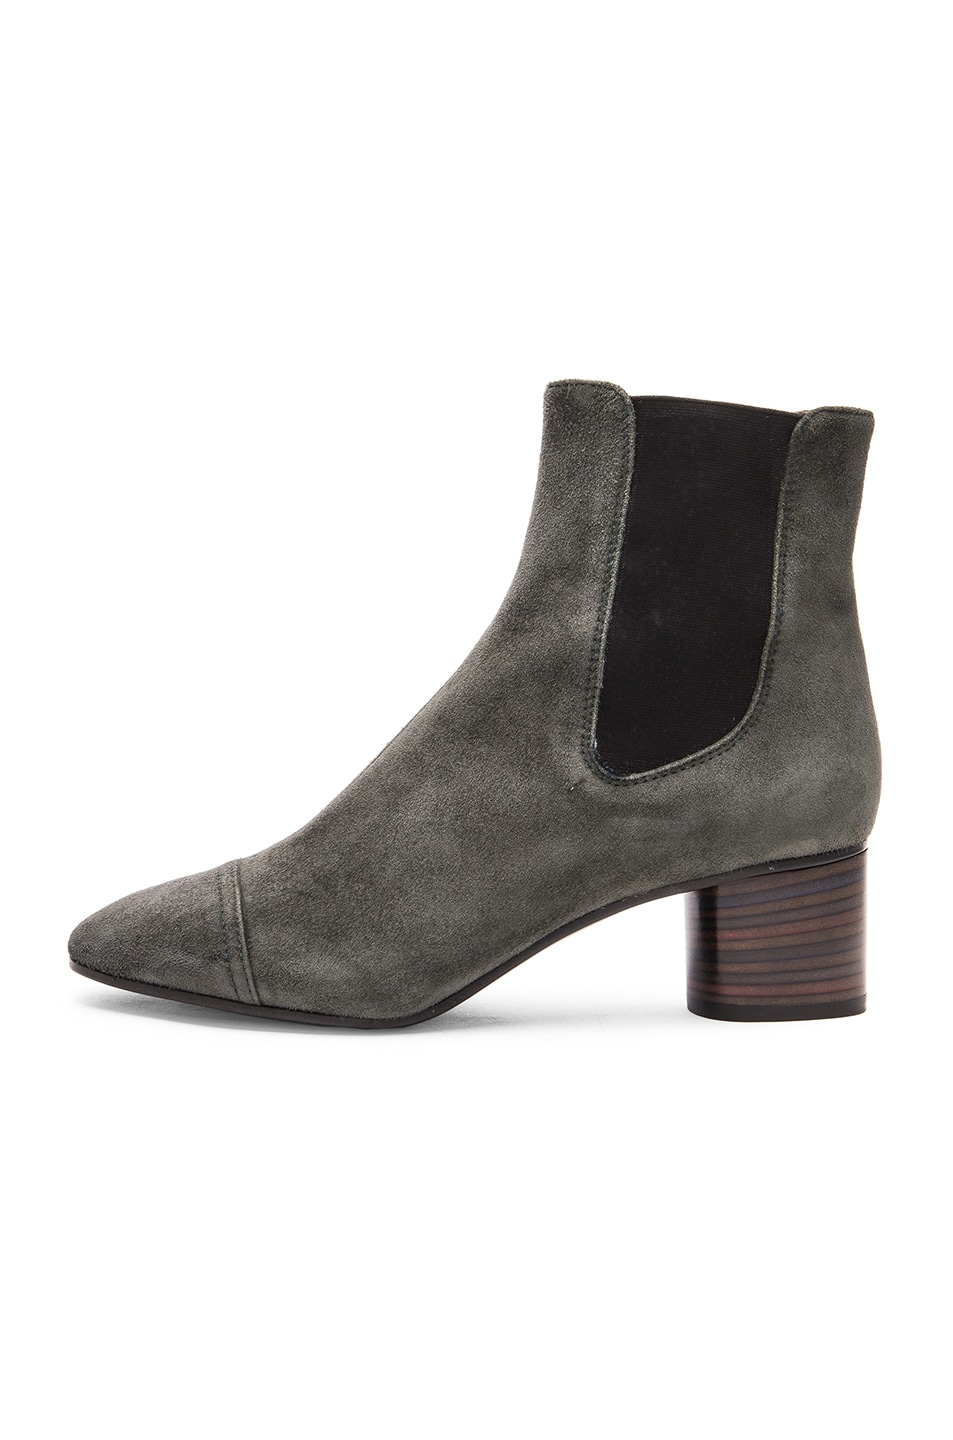 Image 5 of Isabel Marant Danae Velvet Booties in Anthracite